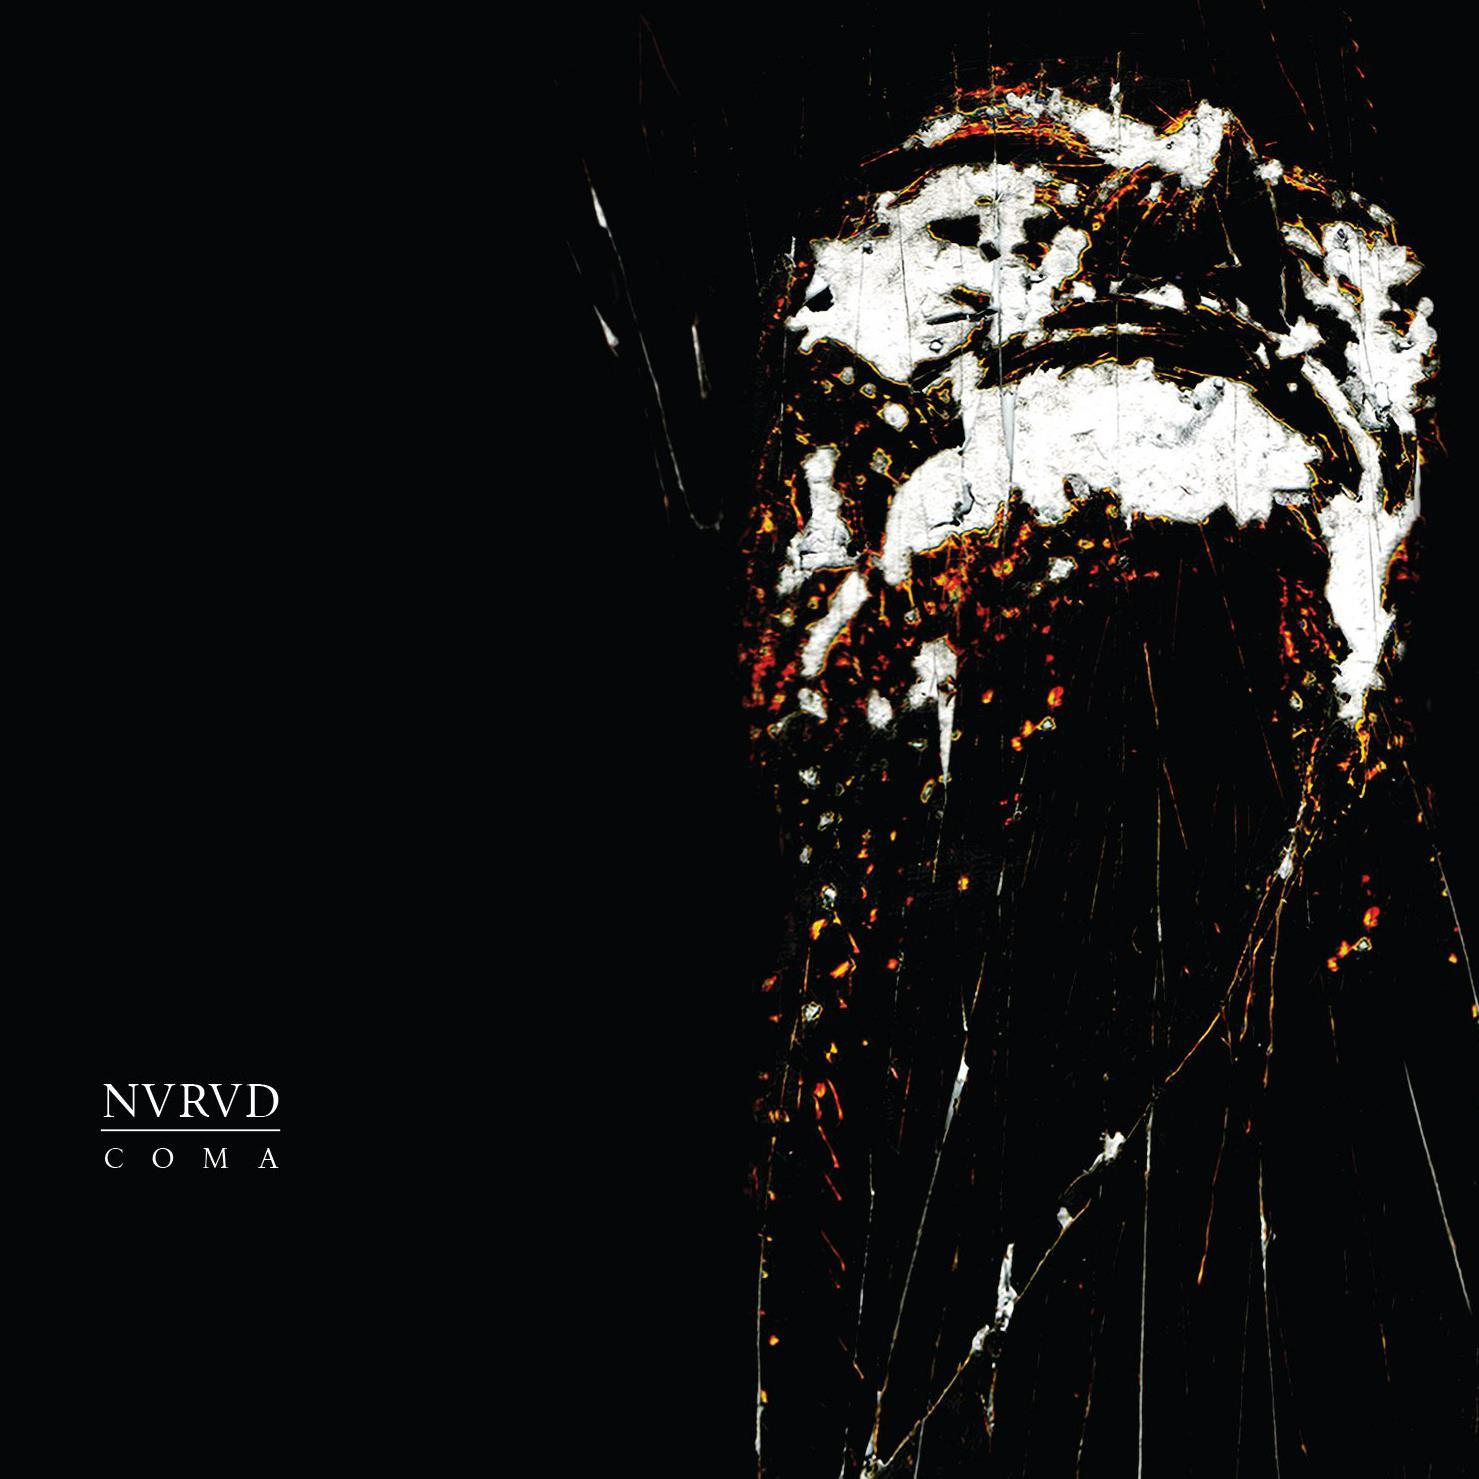 New NVRVD album and video